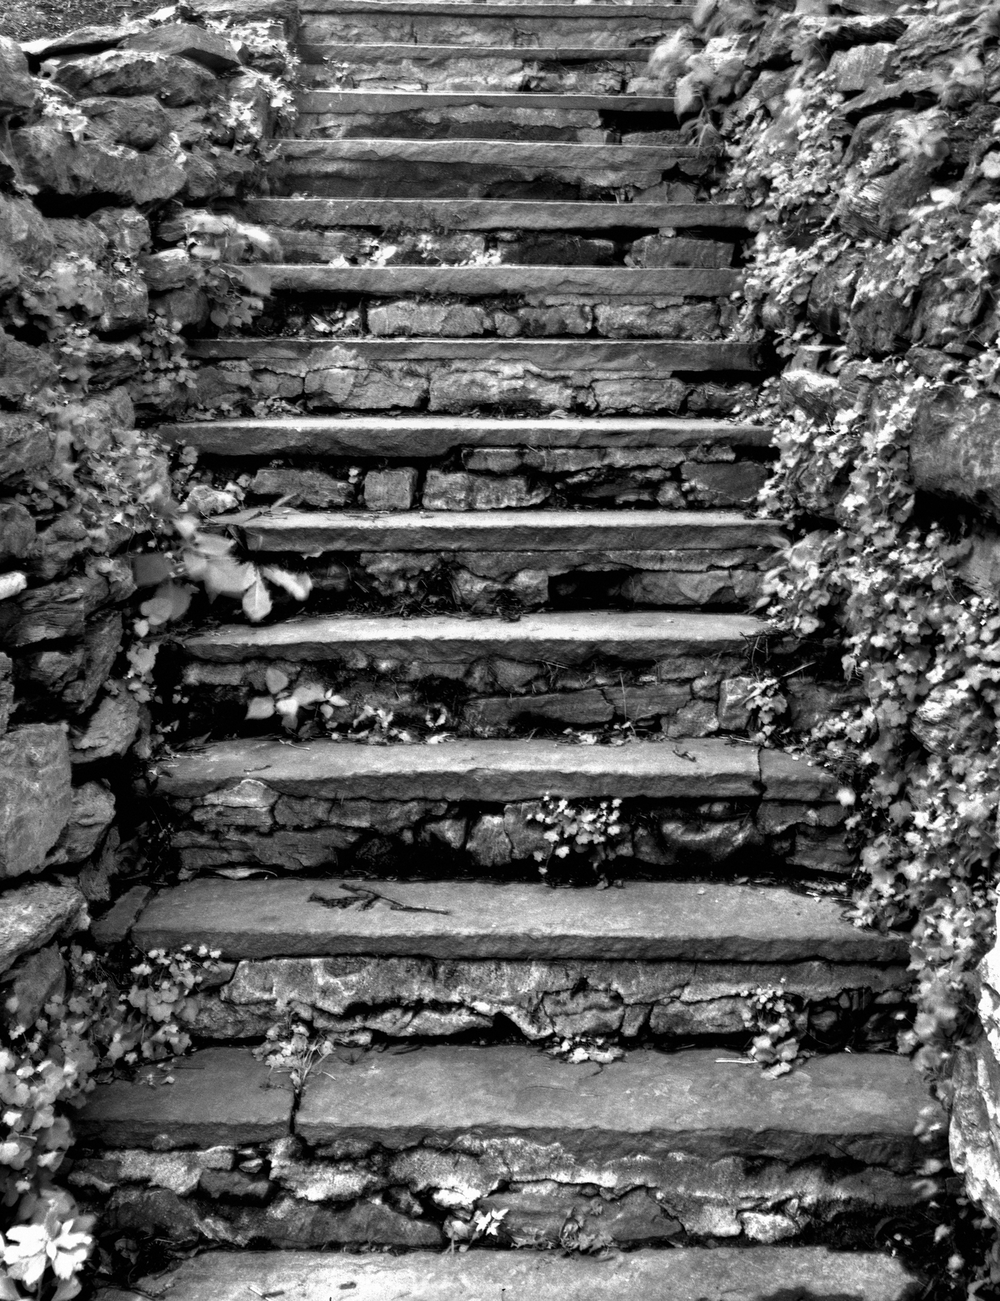 4x5_for_365_project_0187_Reading_Museum_stone_stairs.png